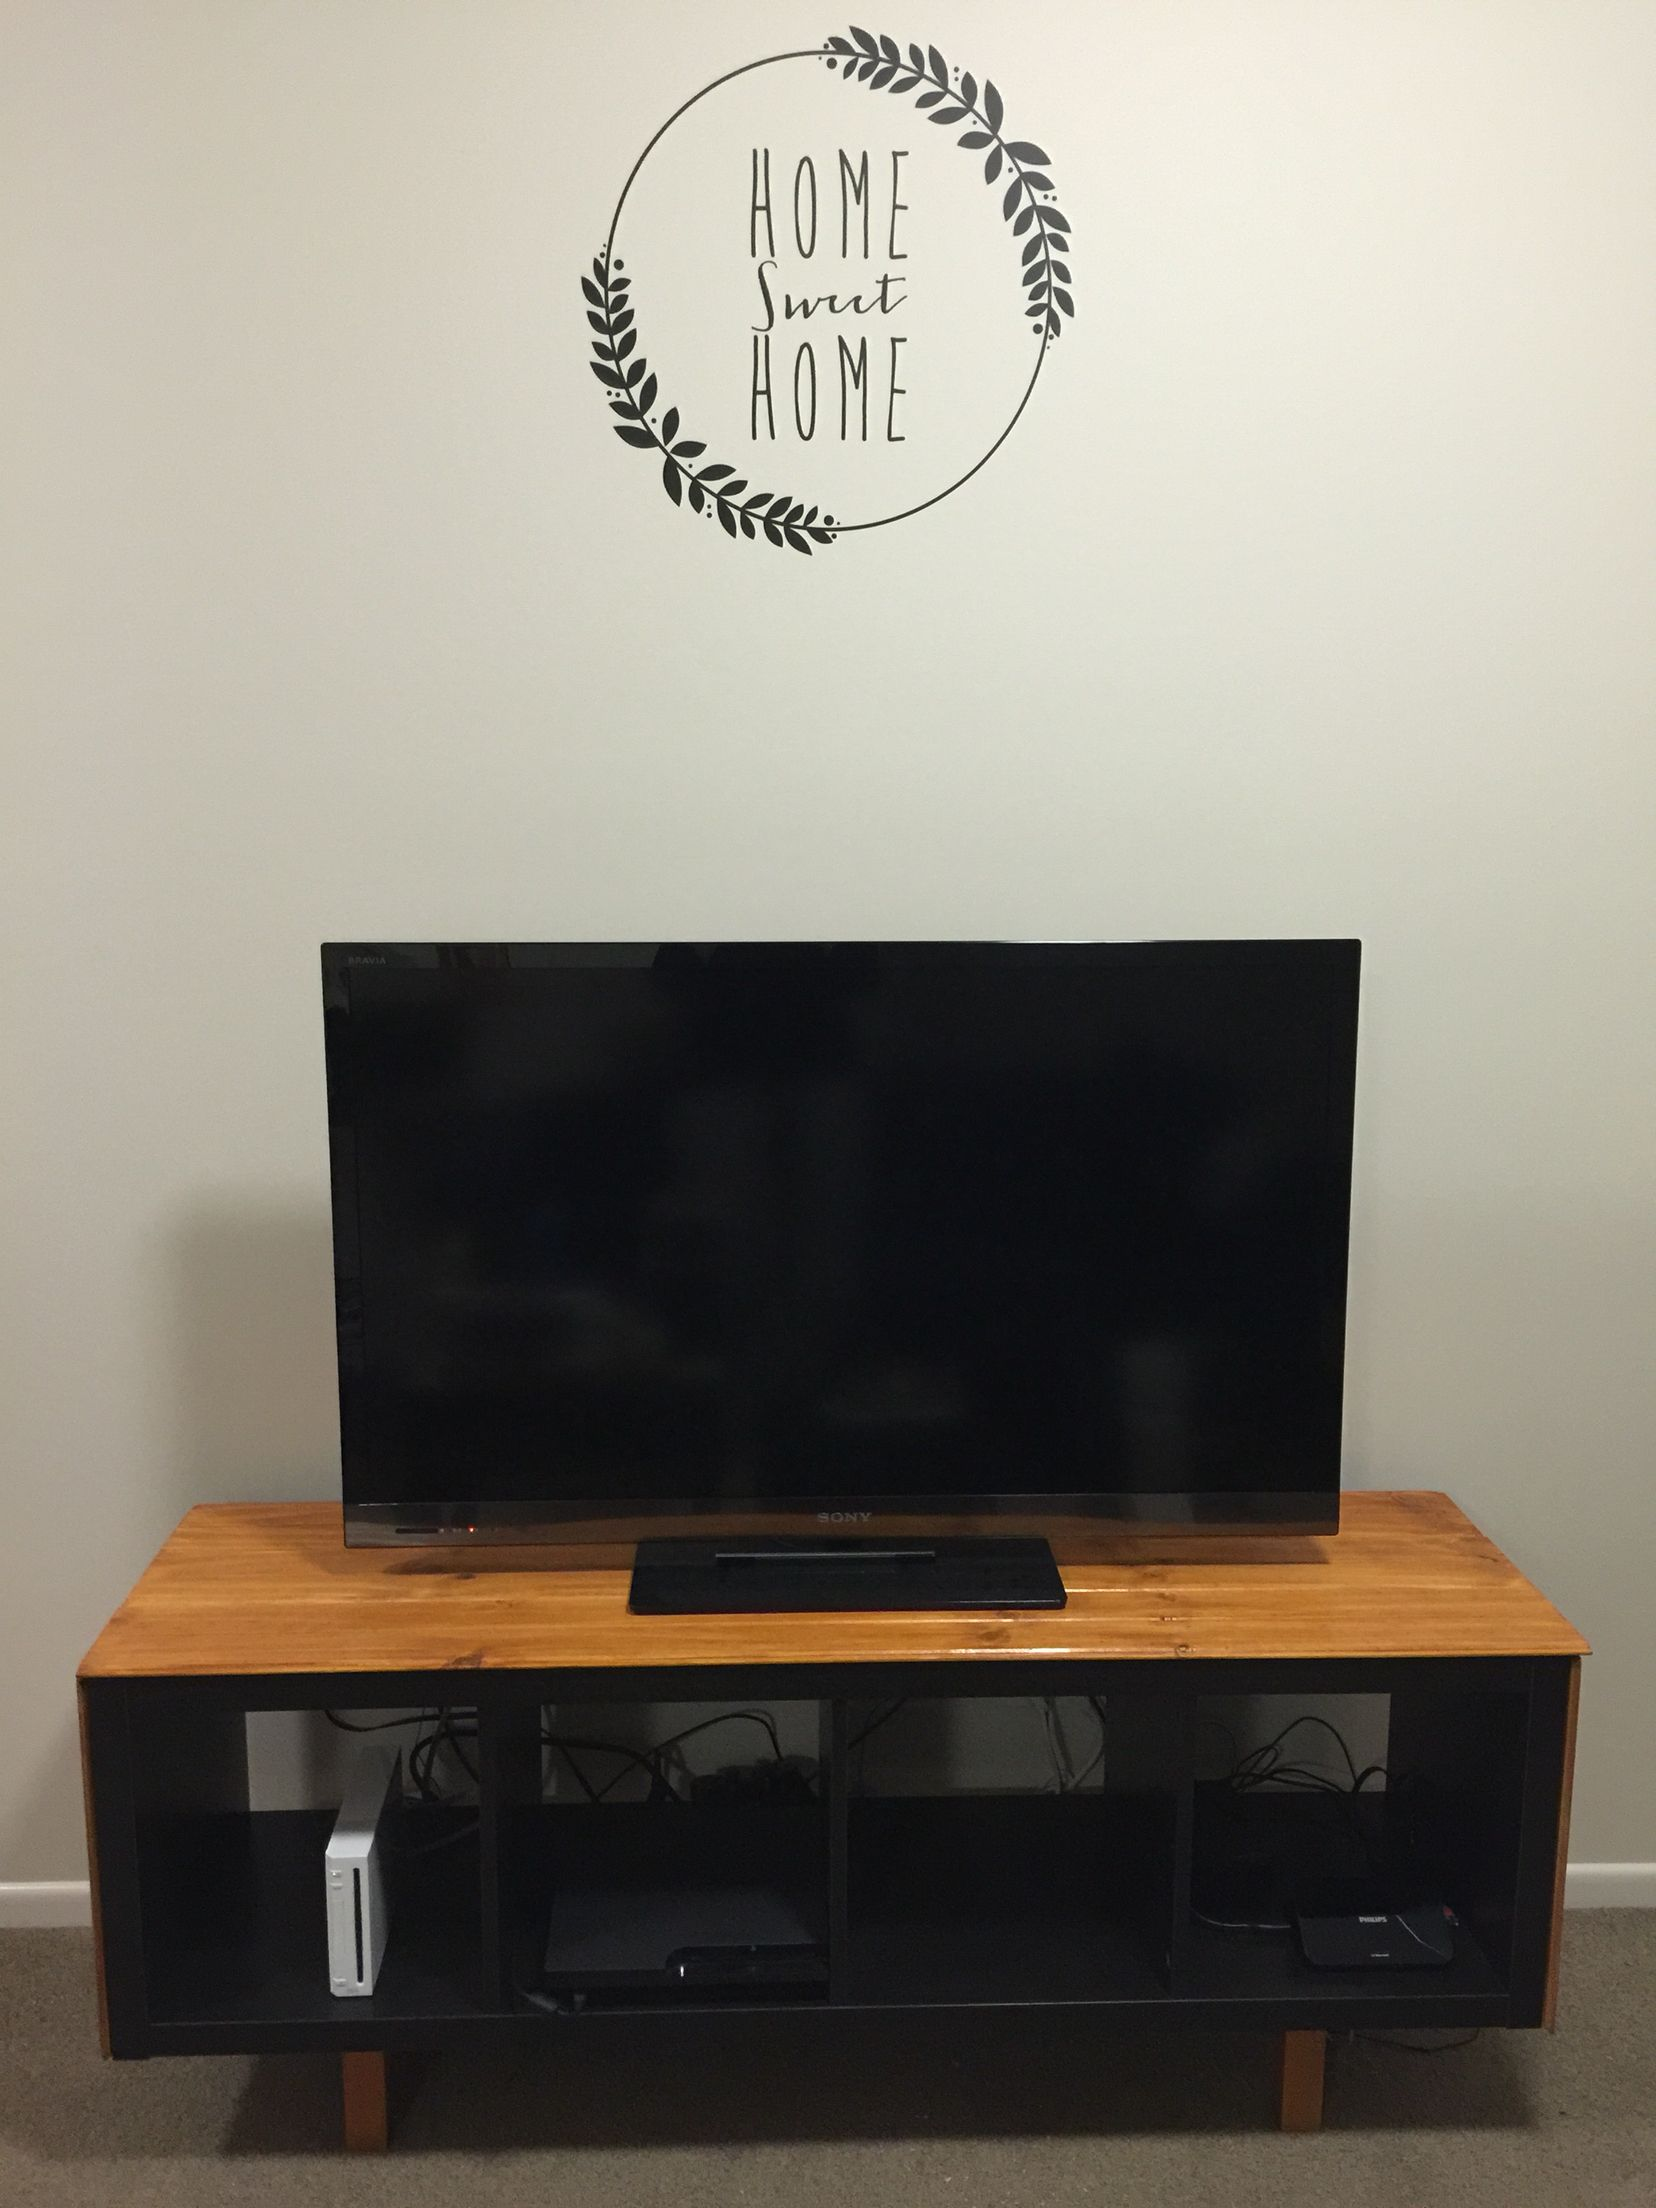 Our Ikea Hack Tv Cabinet Kallax Shelf Turned On Its Side With